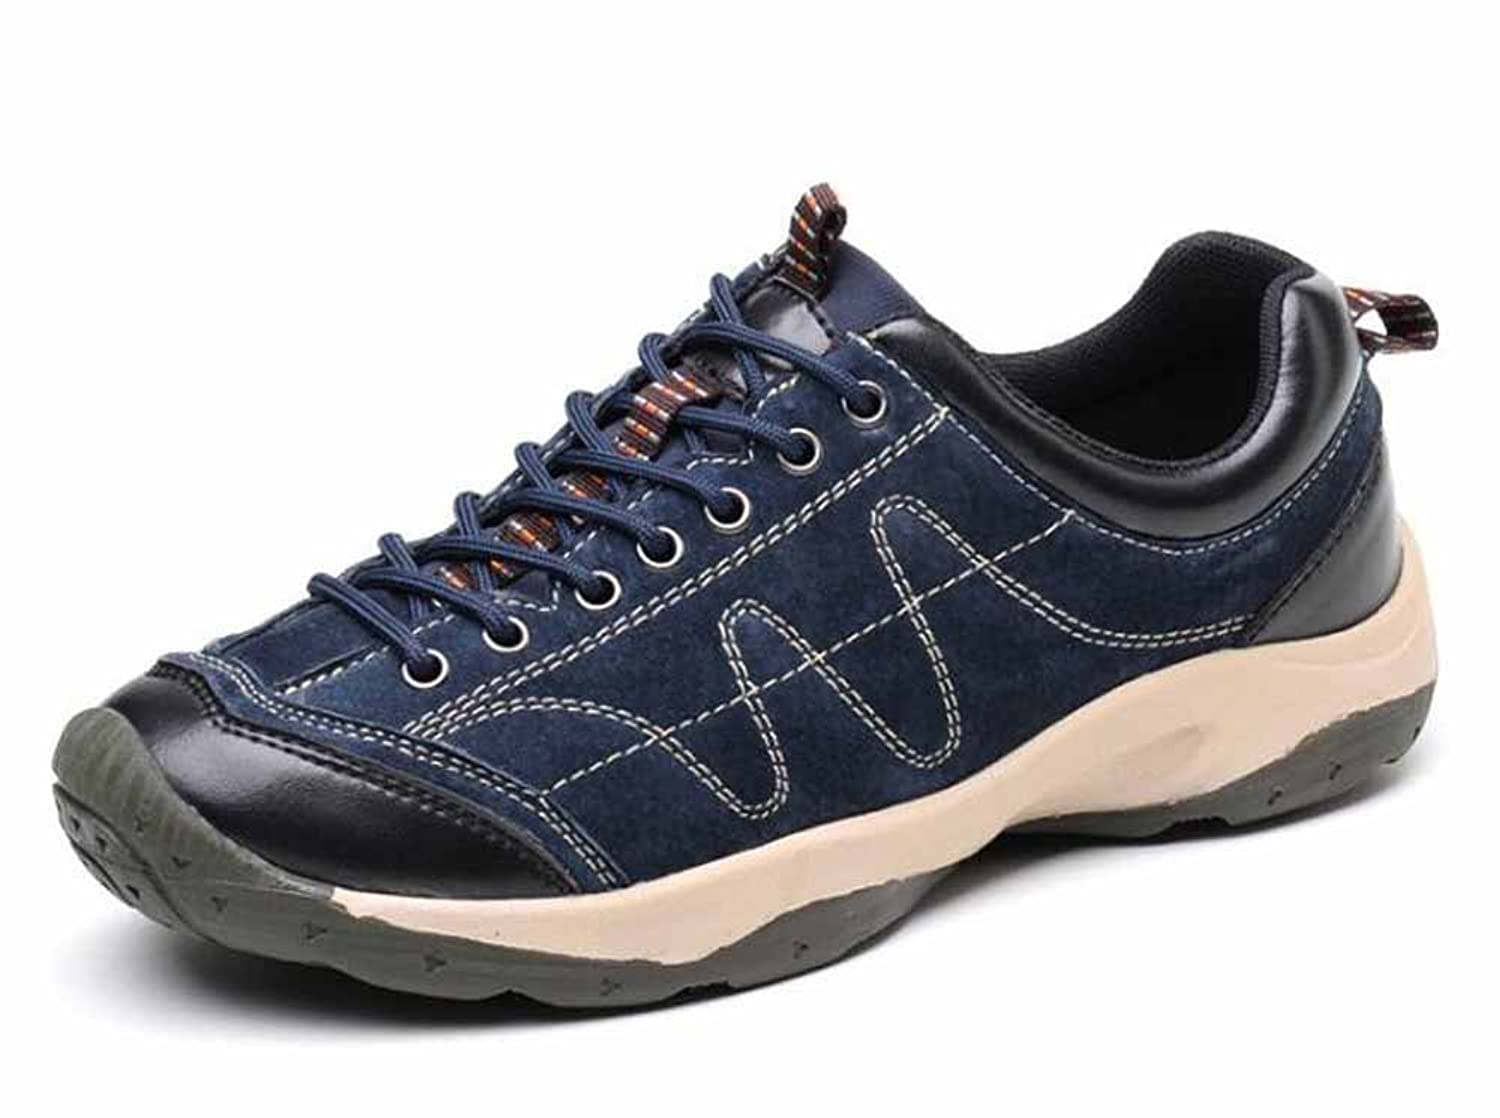 Men Breathable Climbing Shoes Outdoor Leather Shoes Waterproof Hiking Shoes  Low Top Sports Shoes: Amazon.co.uk: Shoes & Bags